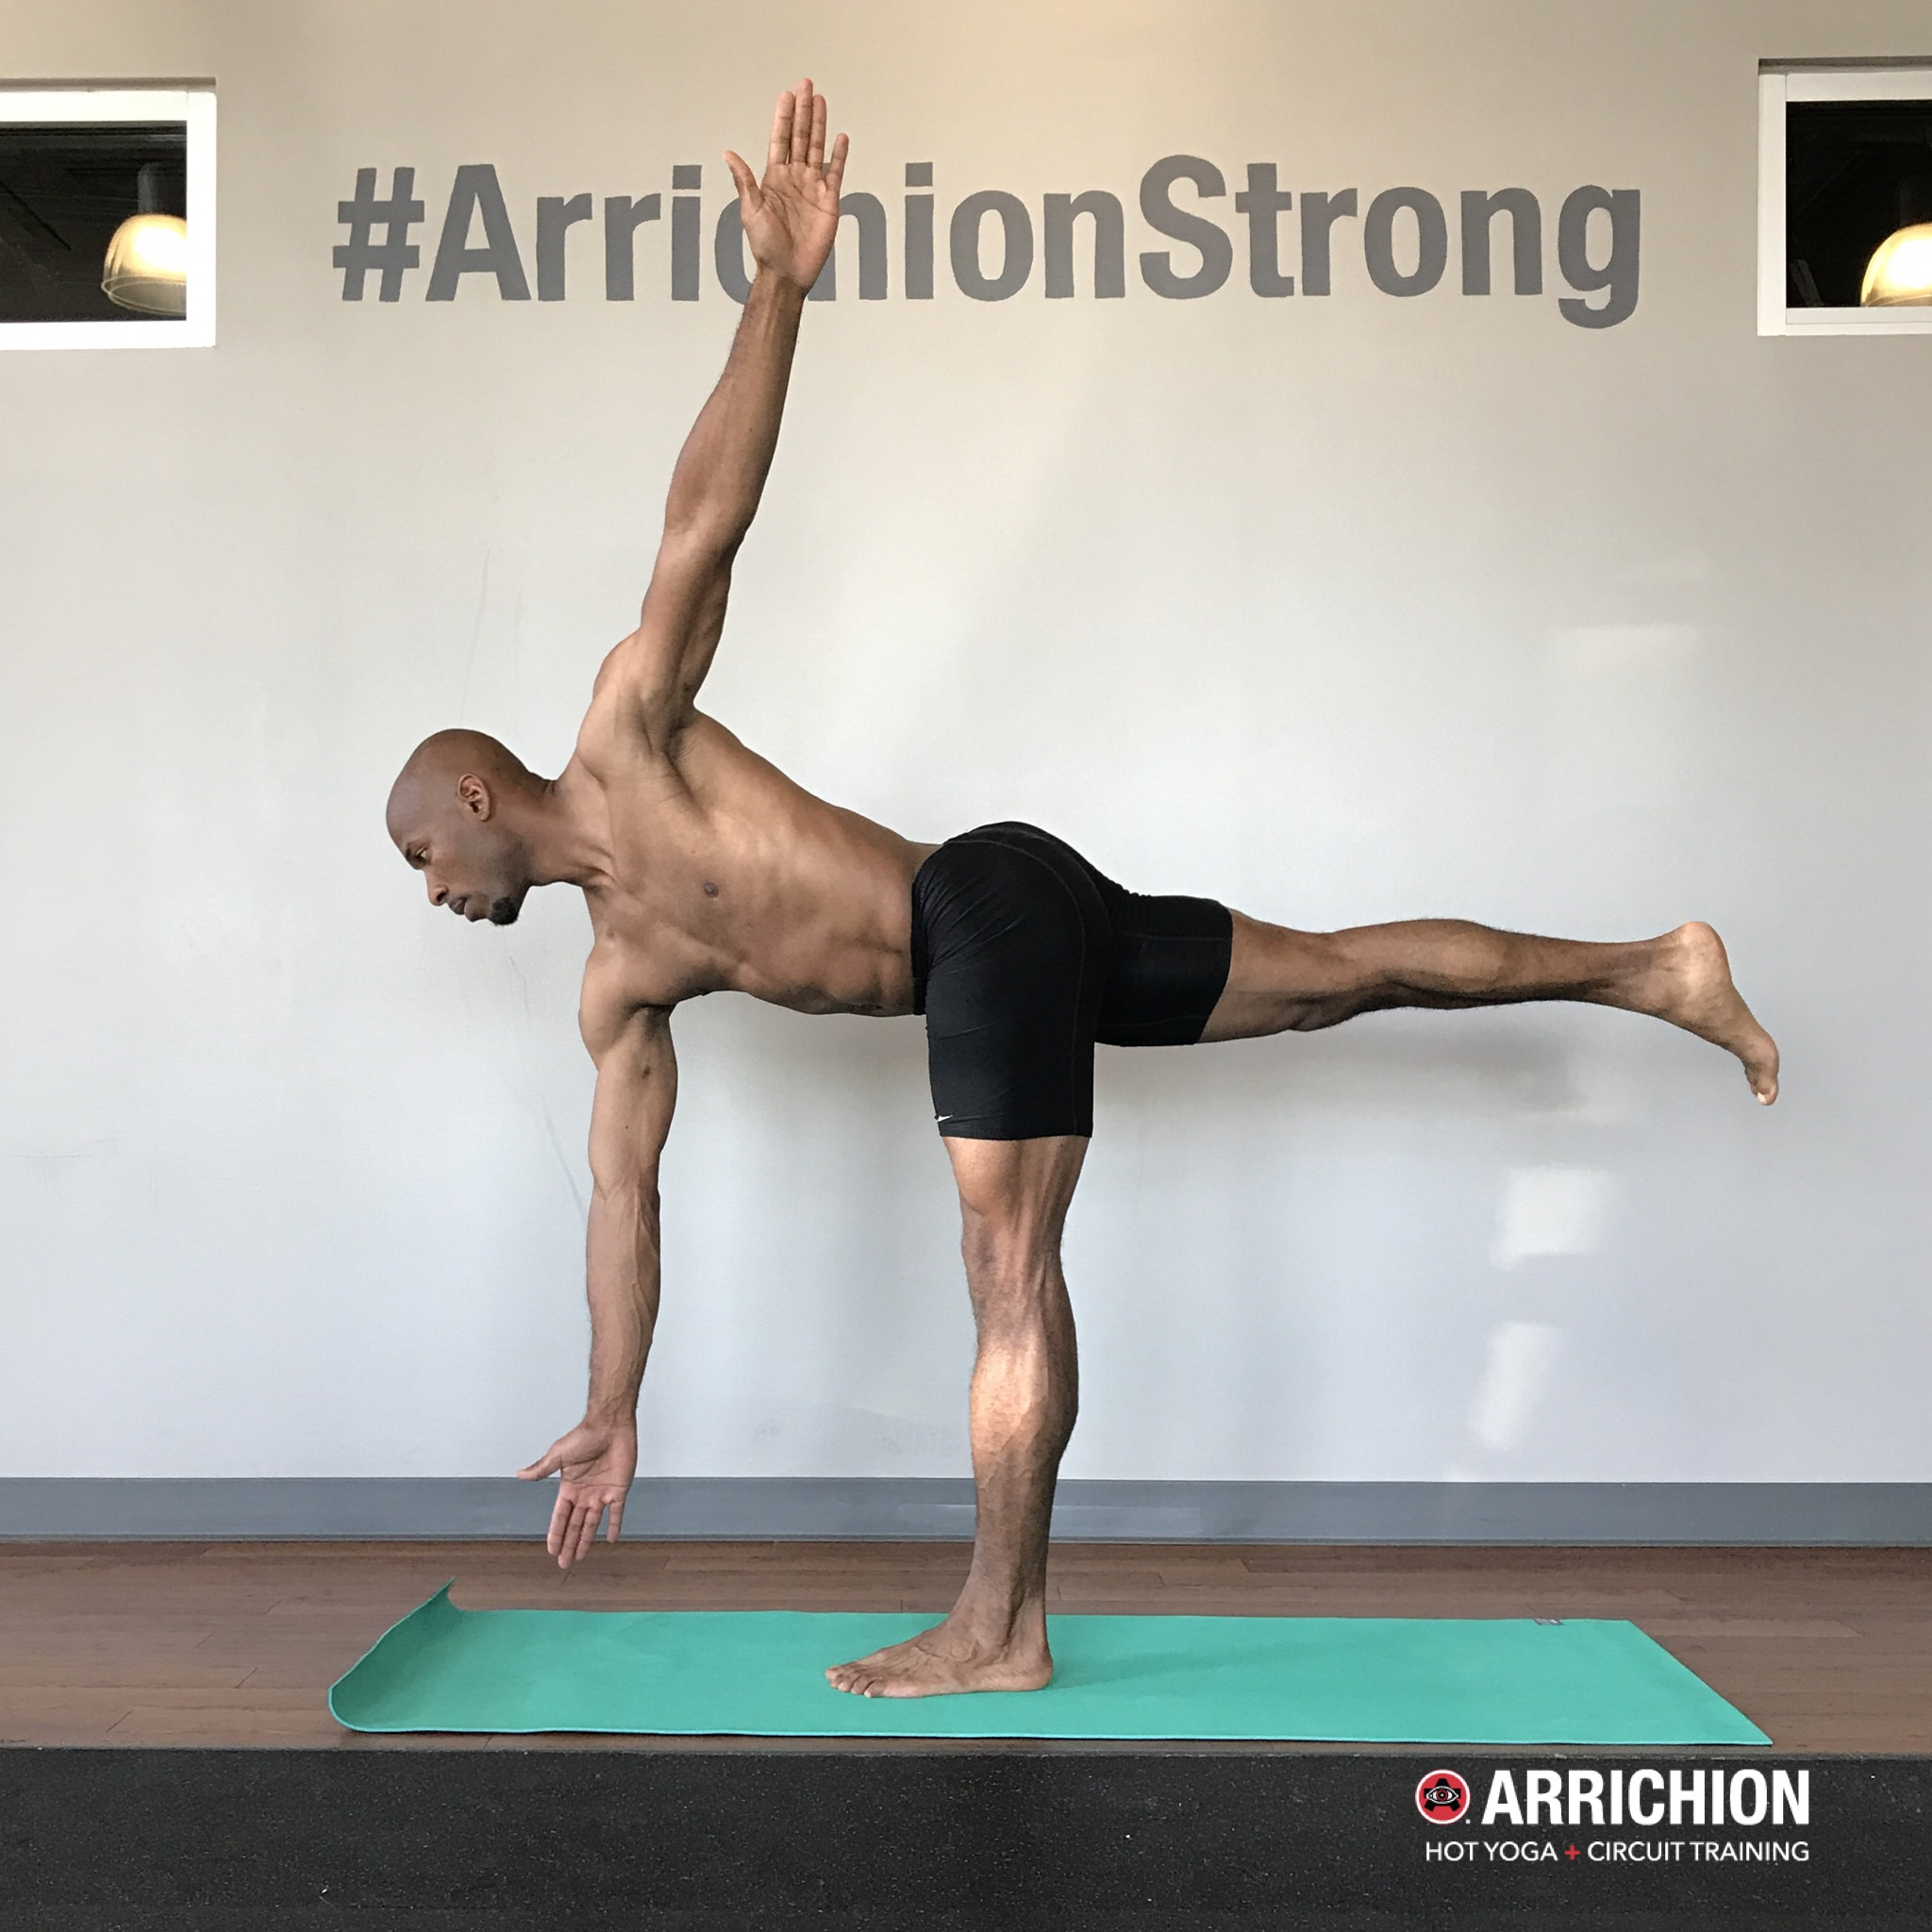 Arrichion Location - Durham — Arrichion Hot Yoga and Circuit Training